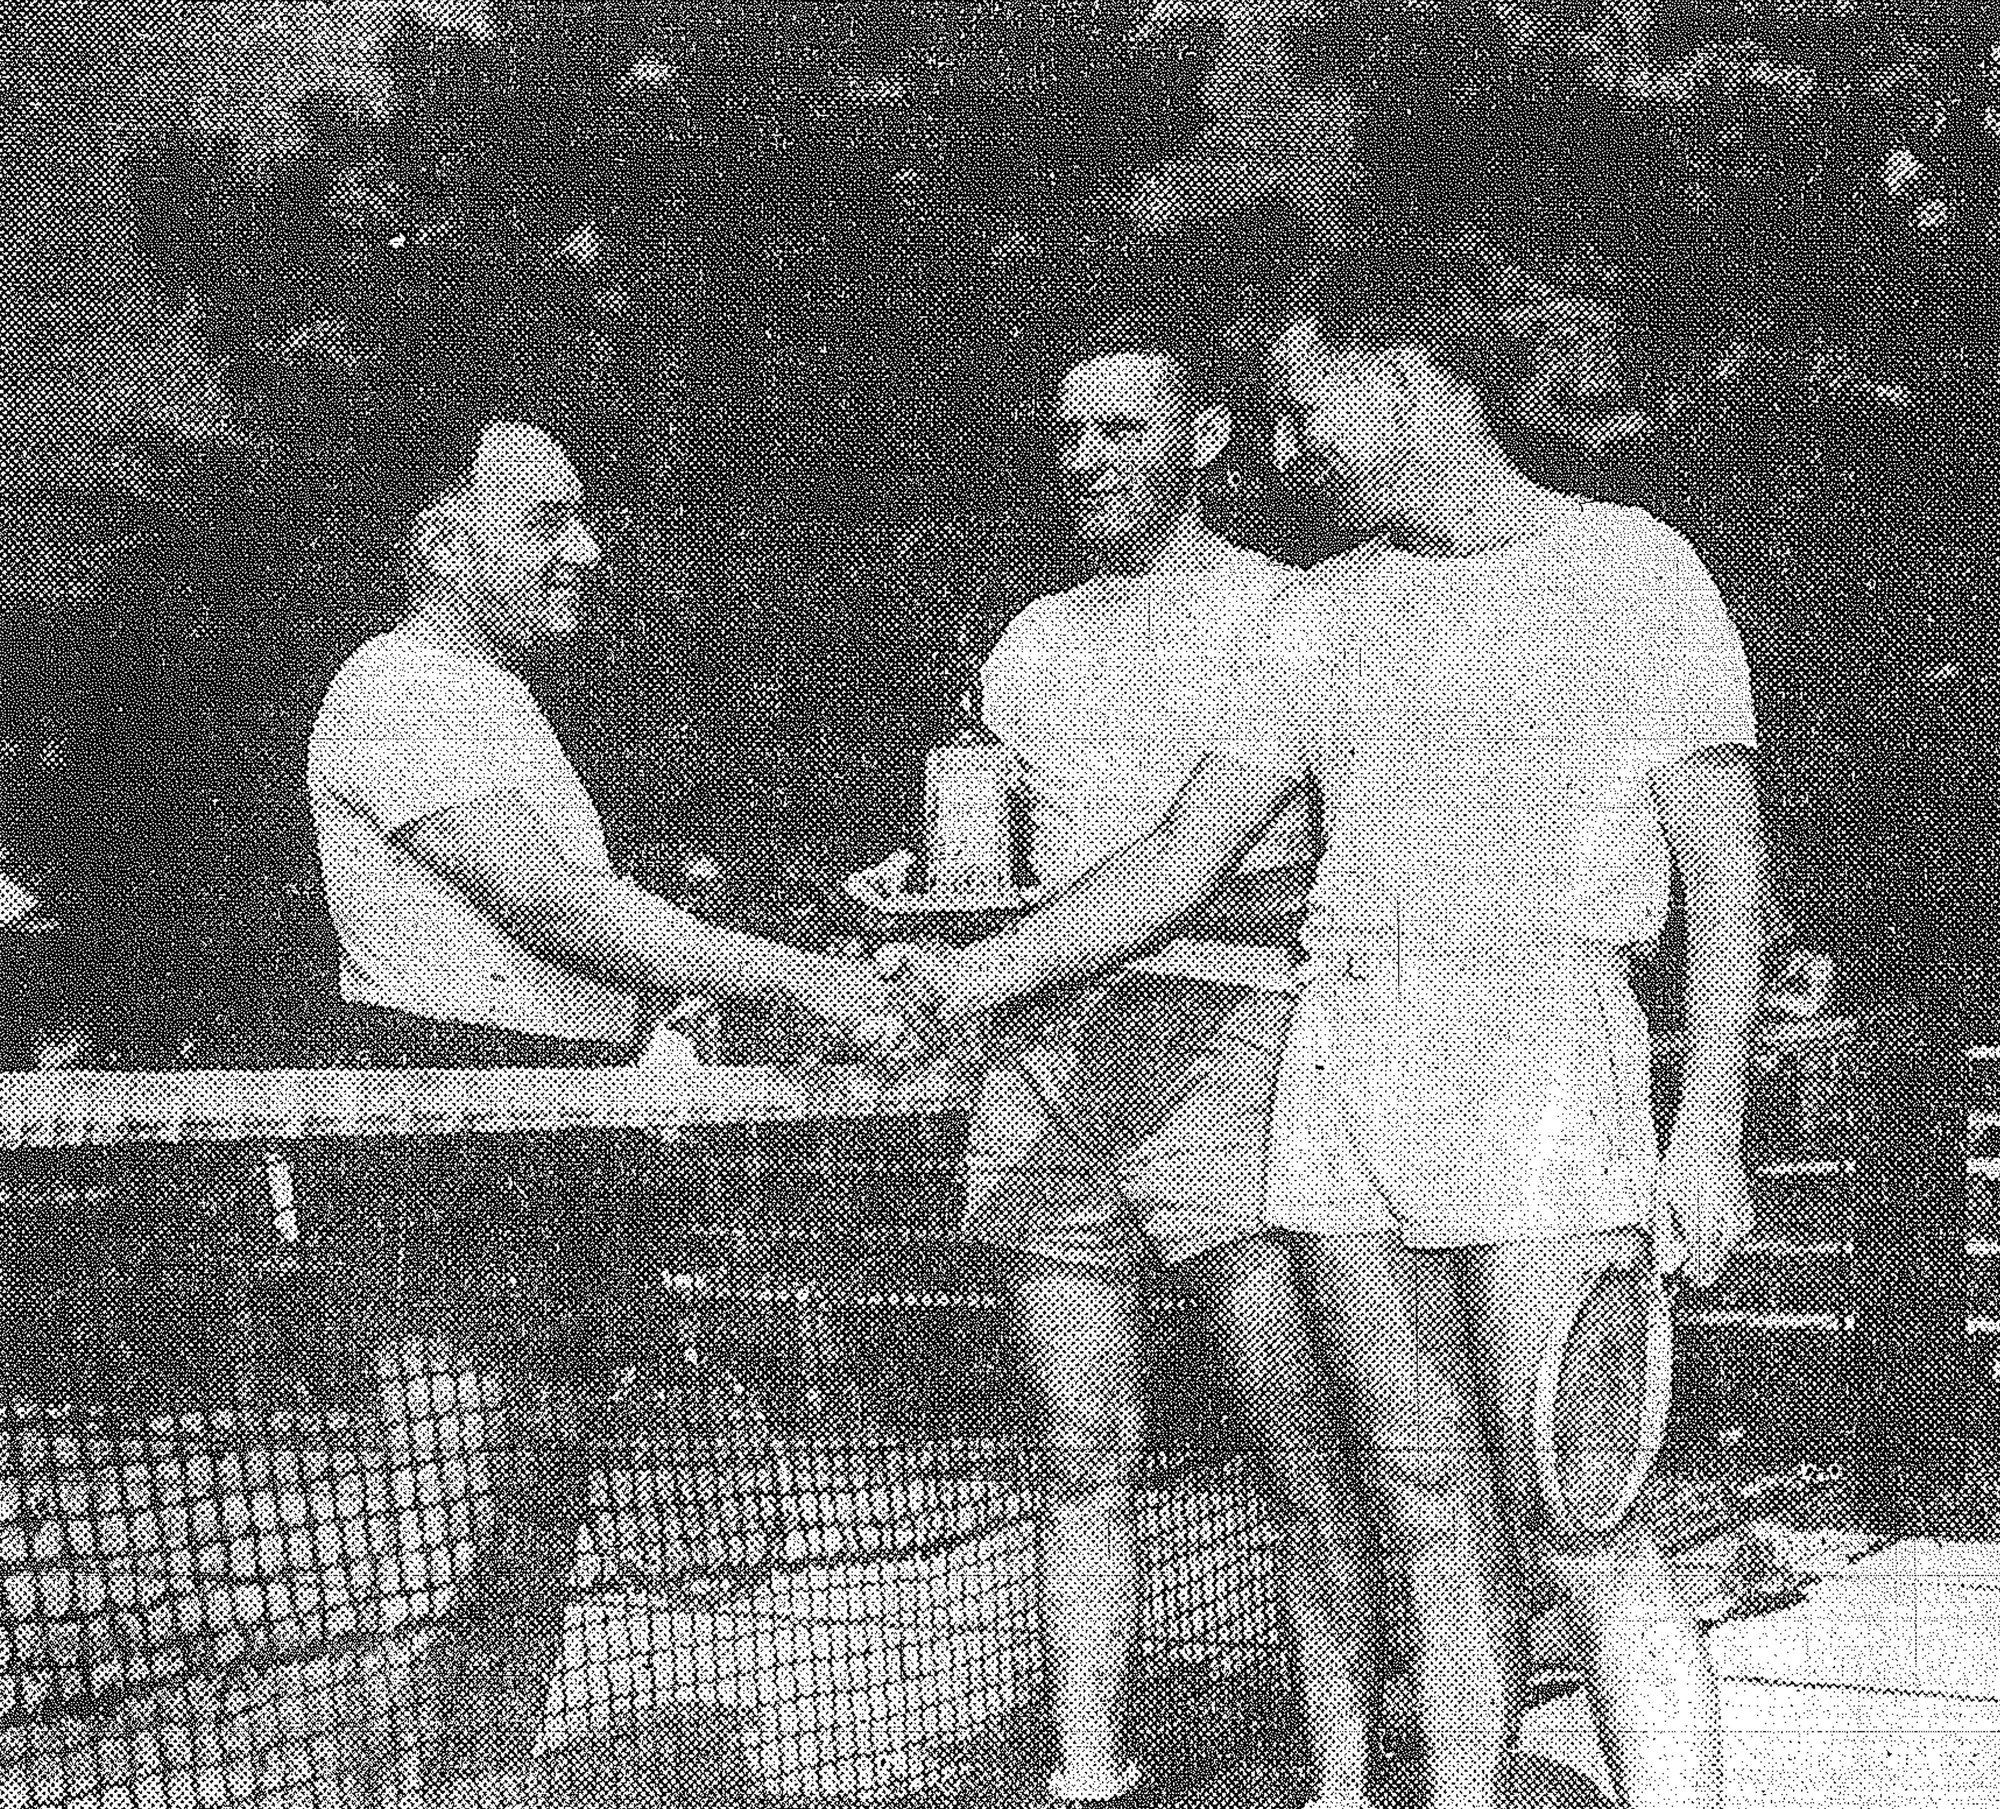 SUMTER ITEM FILE PHOTO  1945 - Capt. Louis Levy, left, meets Lt. Don Heselwood after finals play in the Shaw Field officers' tennis tournament June 9. Lt. Kenneth Mattson is seen standing by to present the award, donated by the Officers' Club.